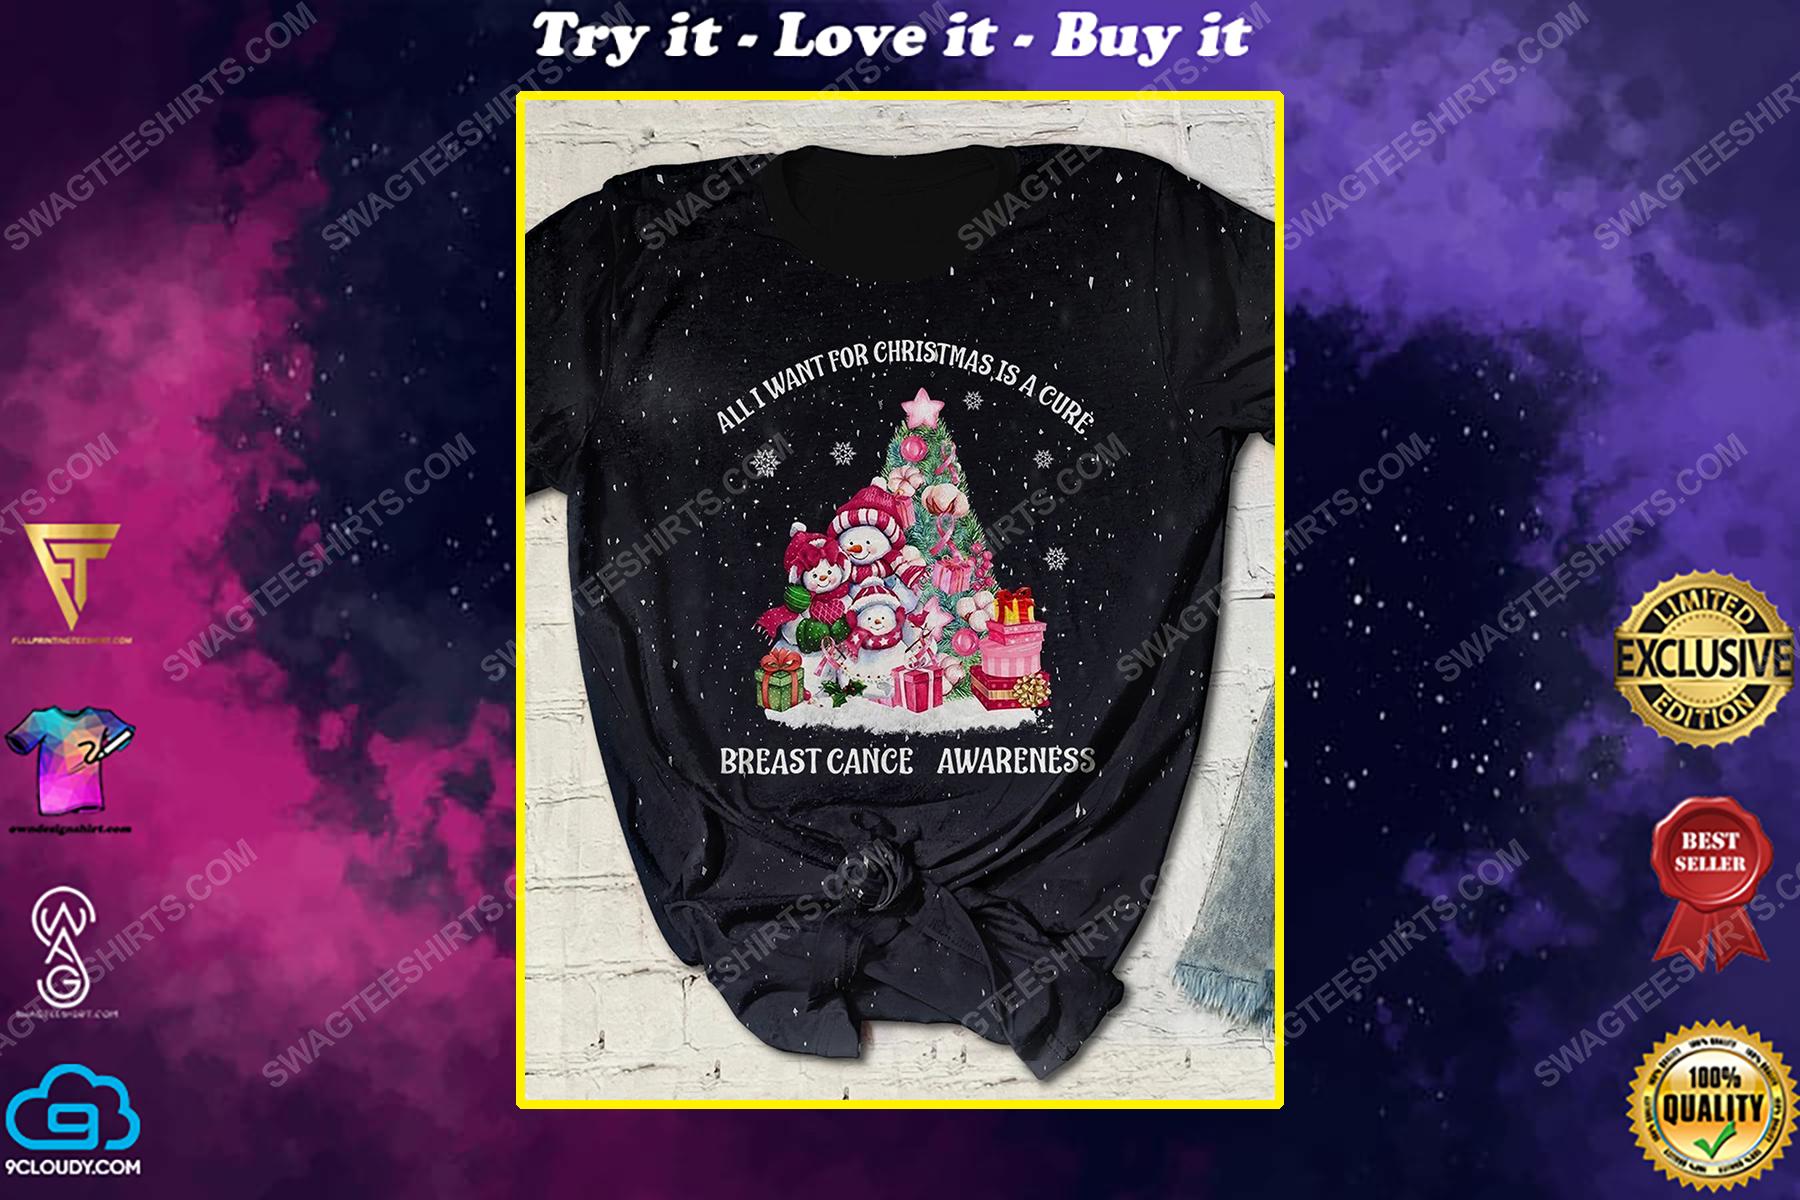 Breast cancer awareness all i want for christmas is a cure bleached shirt